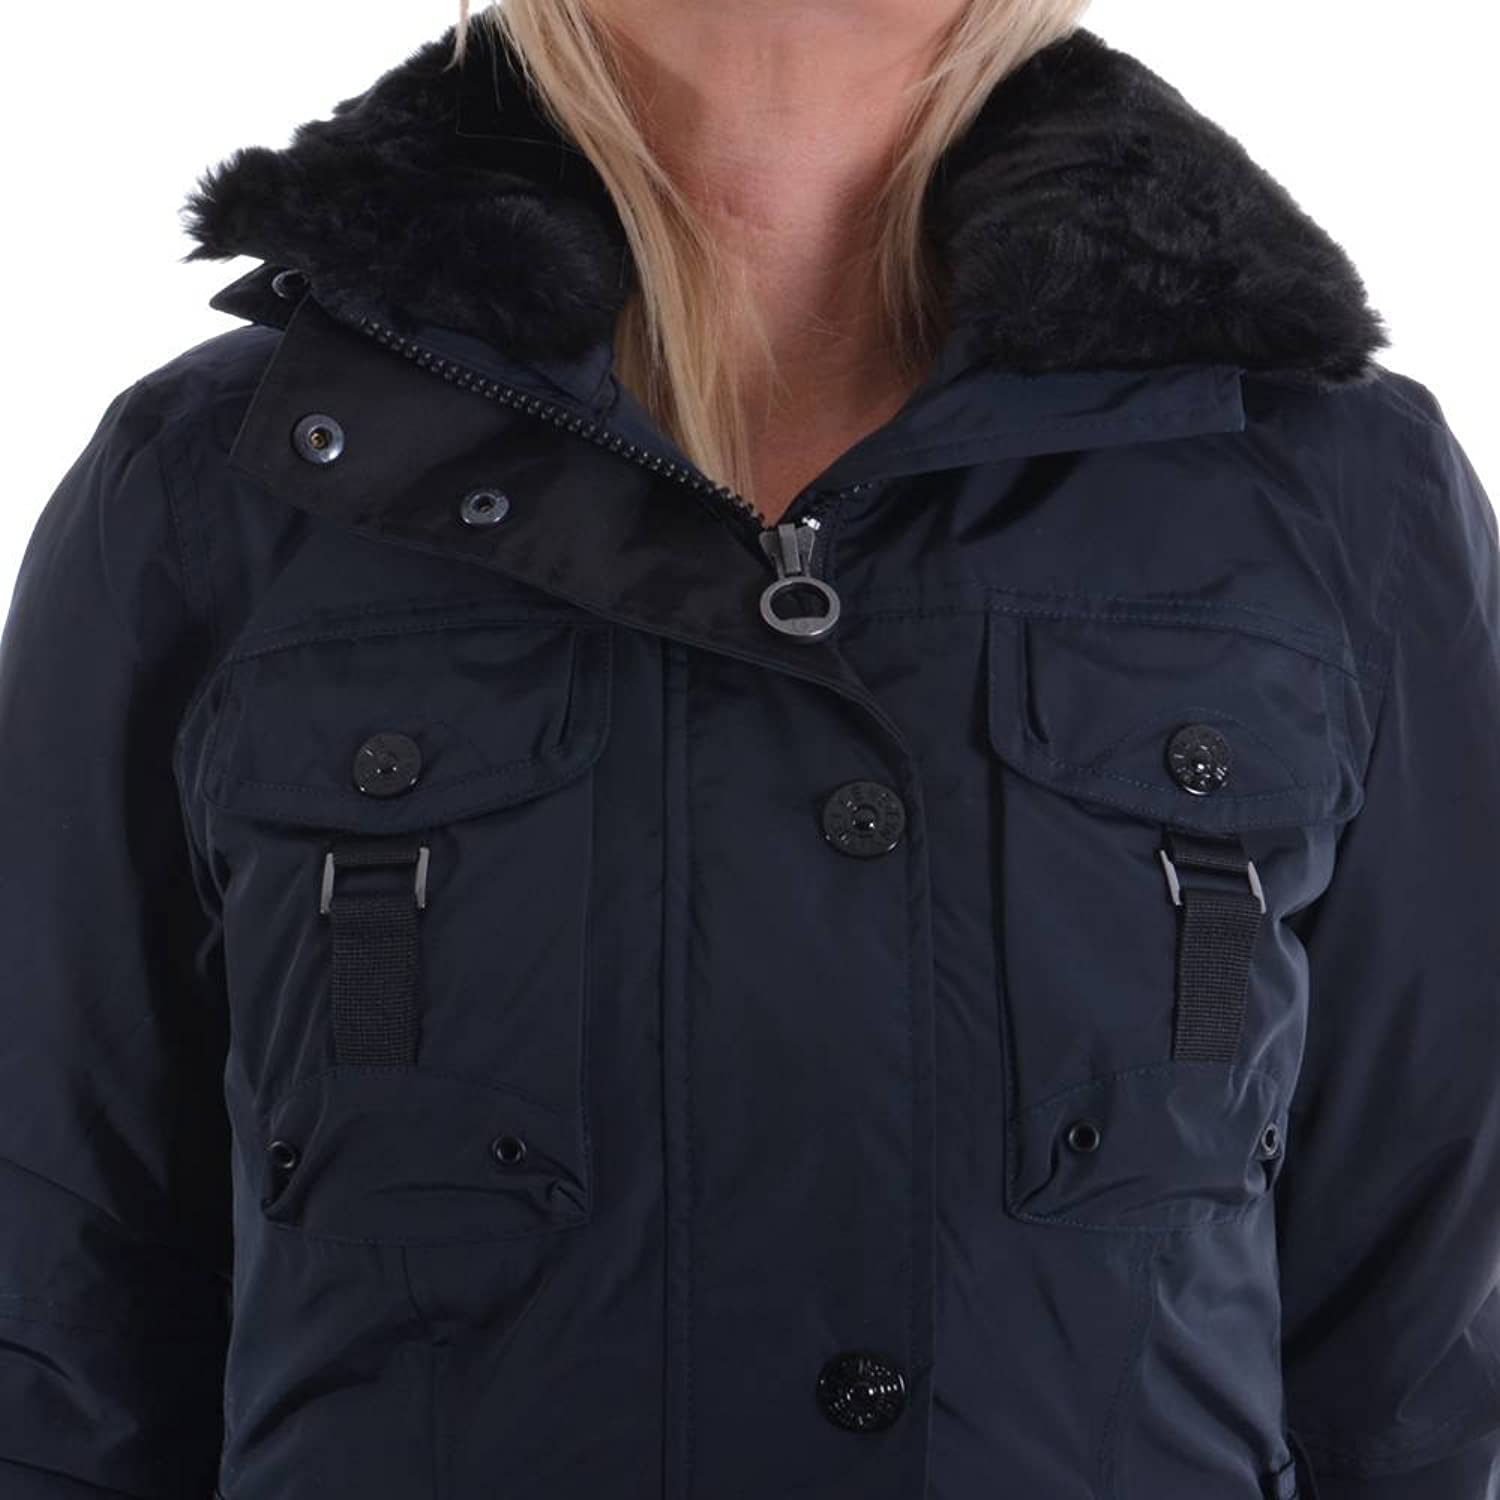 Wellensteyn damen jacke xxl